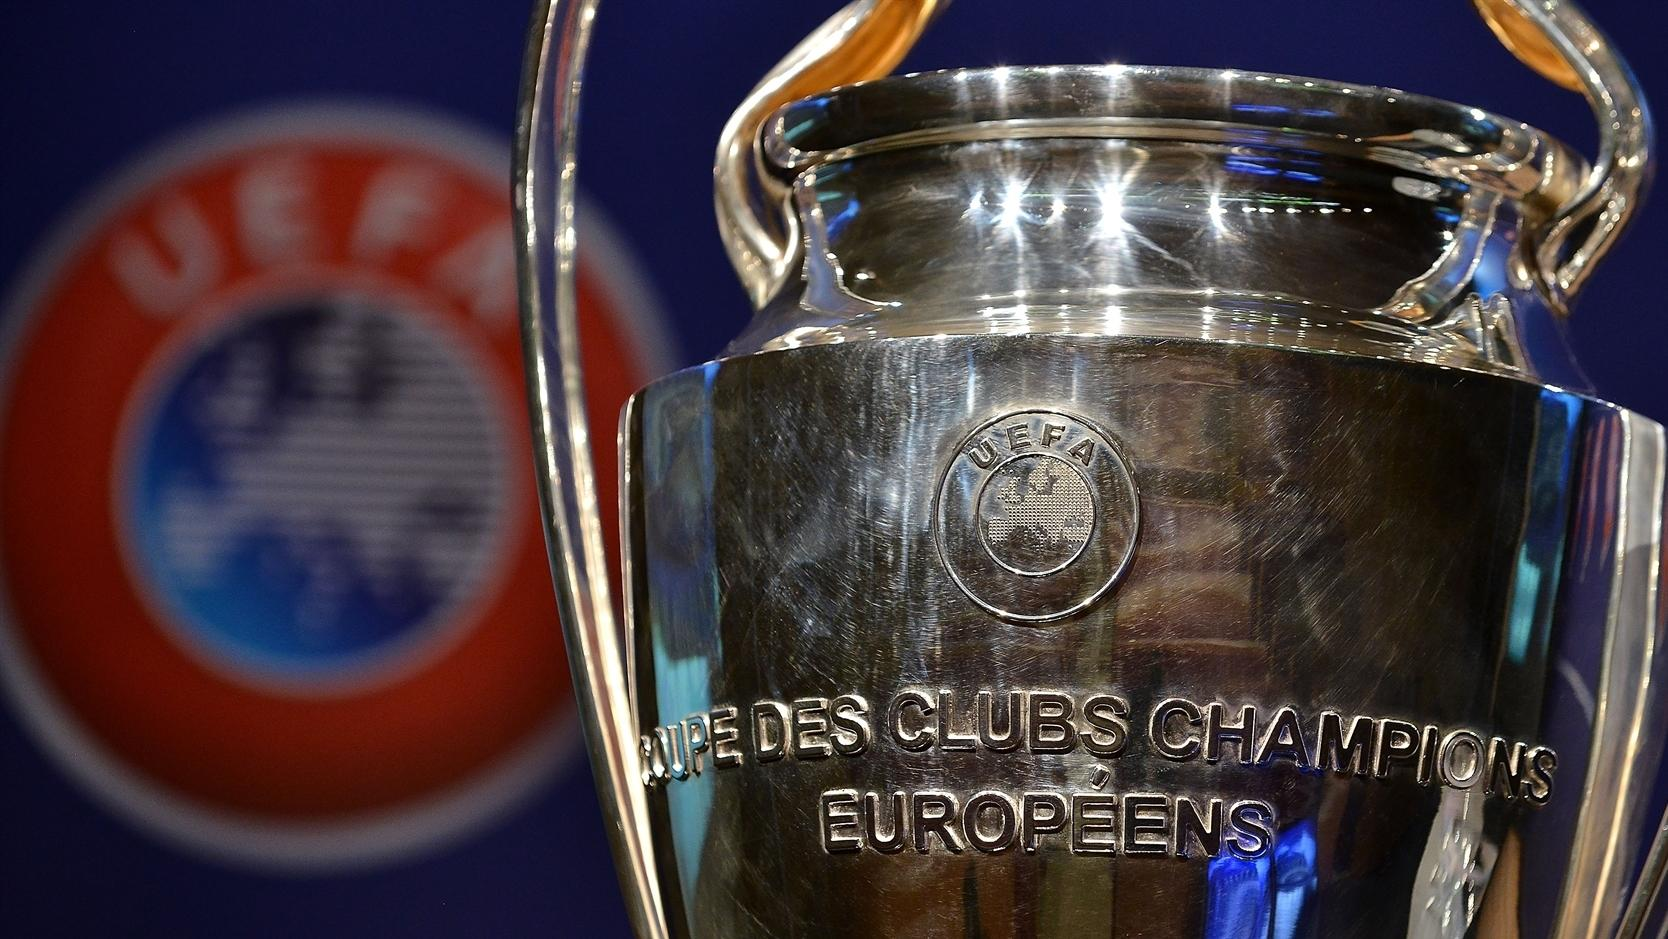 2020 21 uefa champions league all you need to know uefa champions league uefa com 2020 21 uefa champions league all you